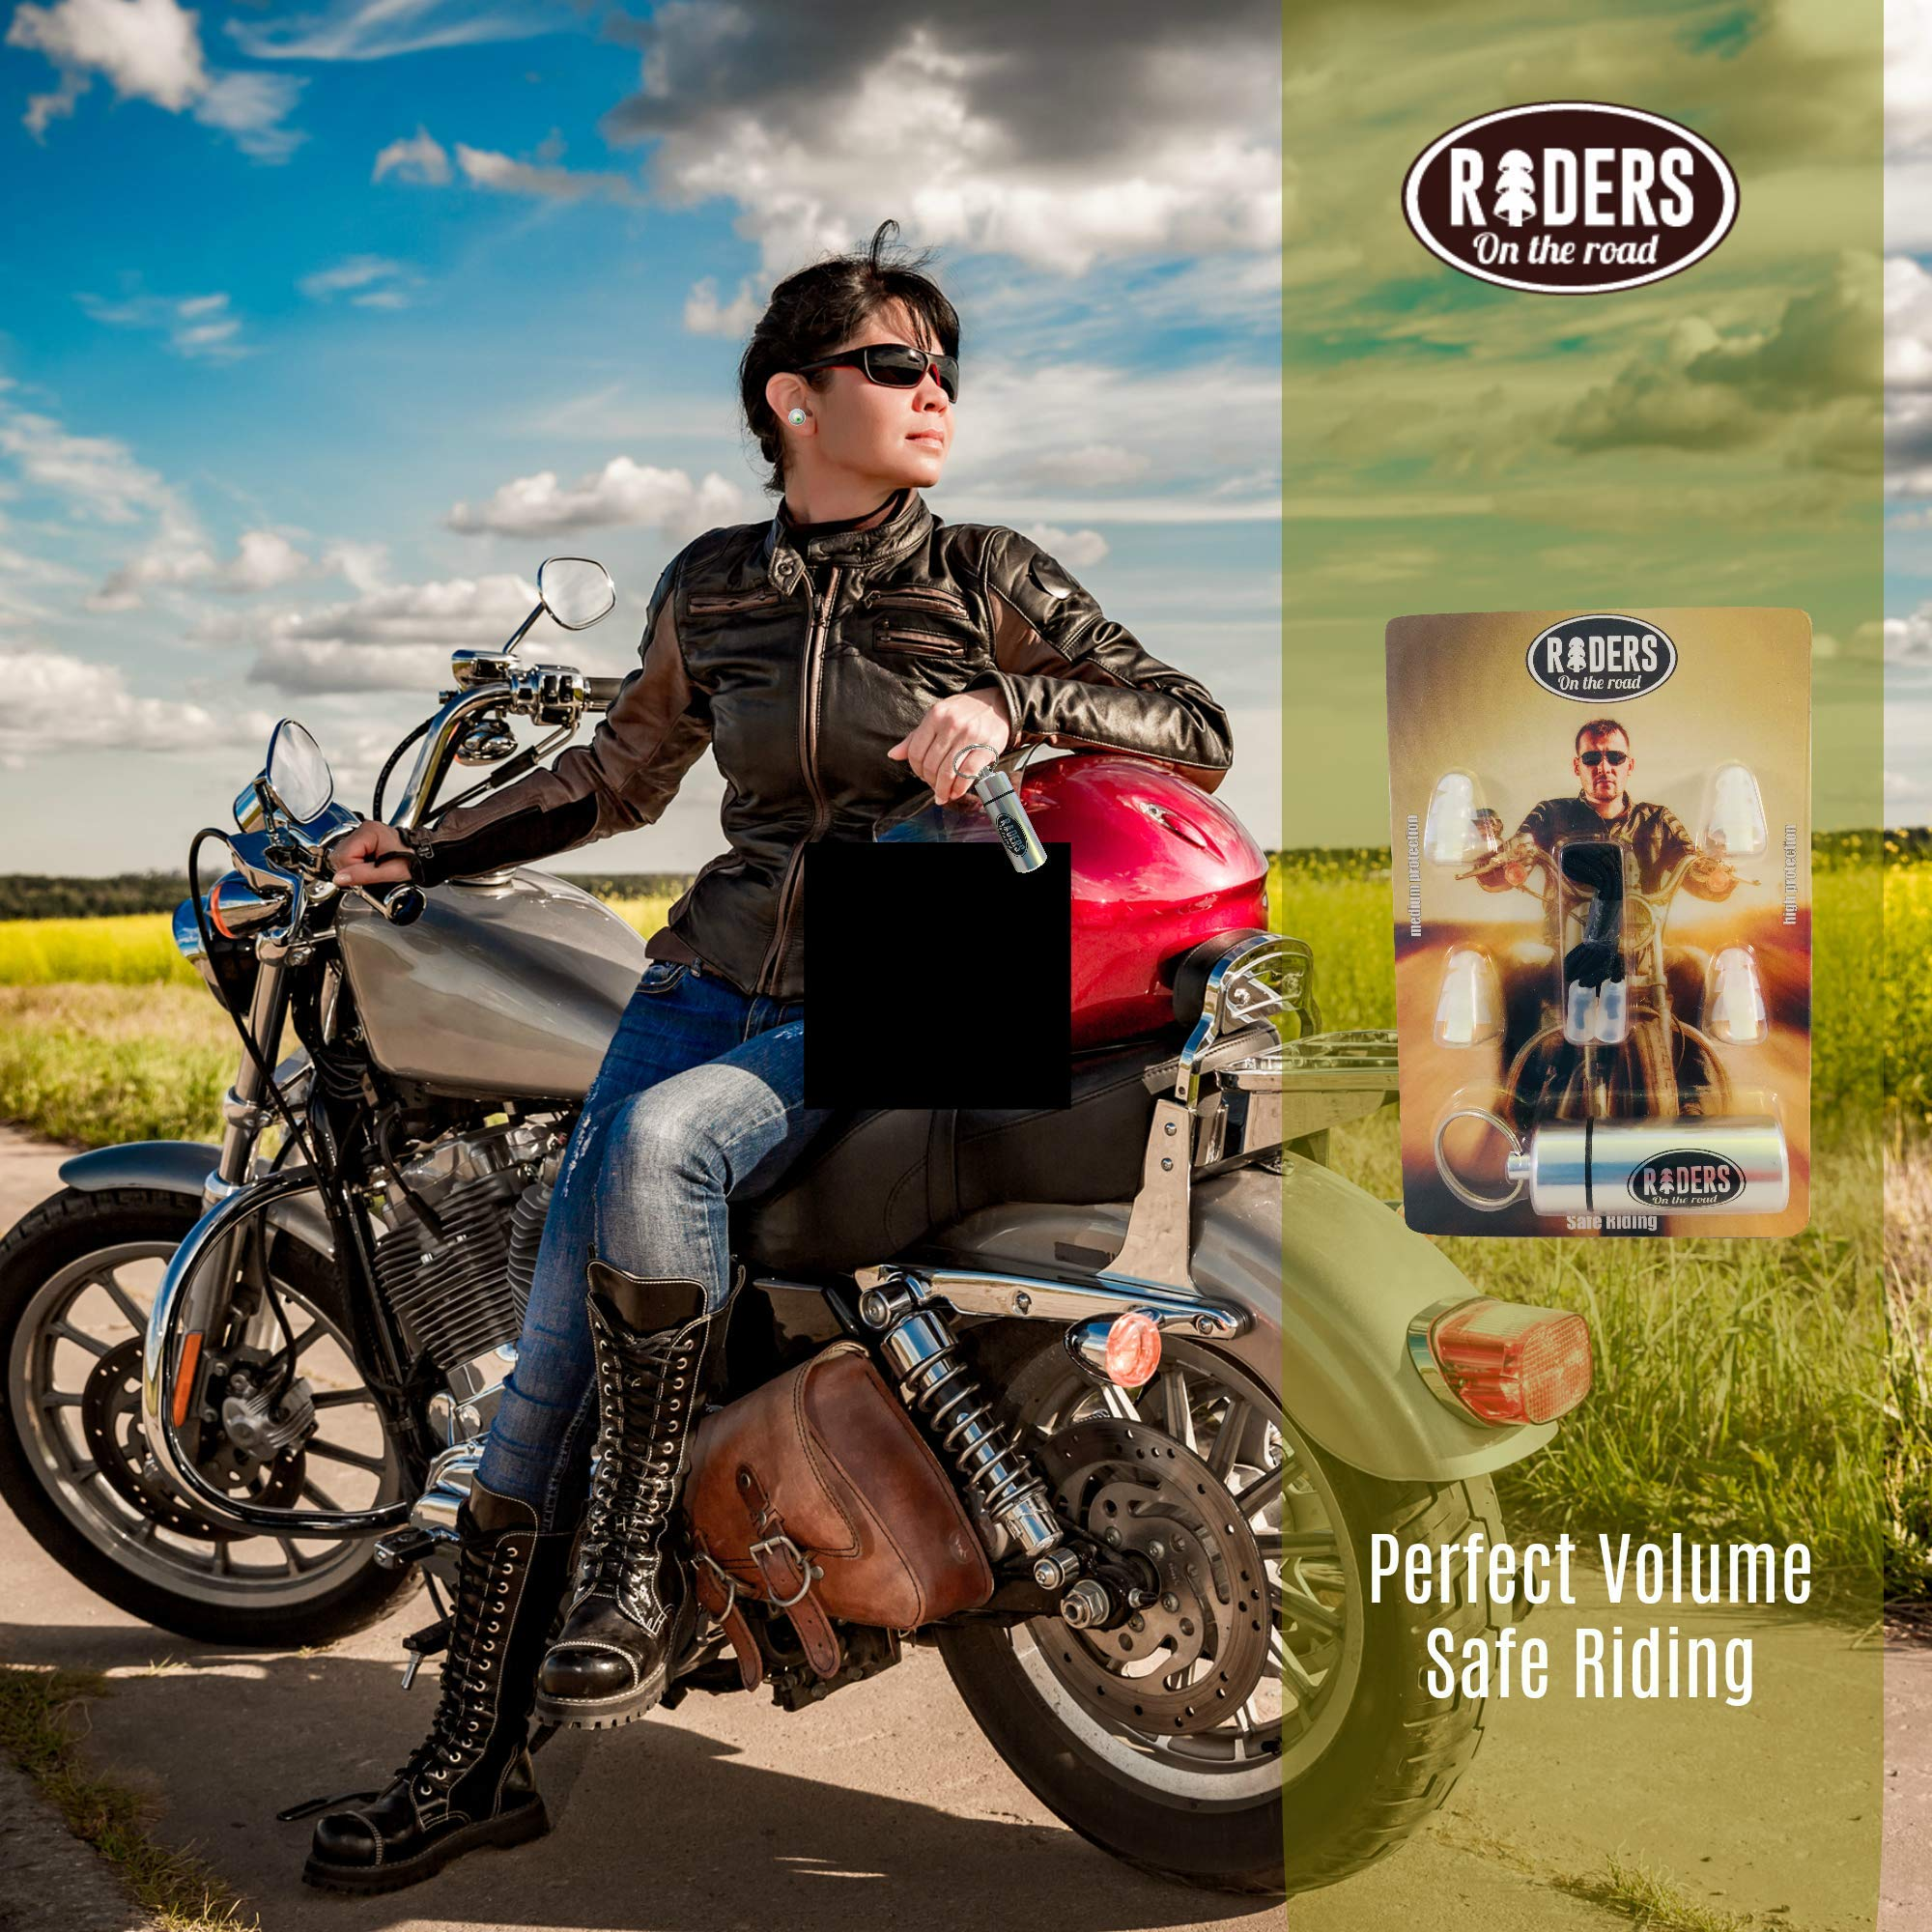 Motorcycle, Musician & Concert Ear Plugs For Noise Reduction With Keychain Carry Case - Earplugs Filtered Hearing Protection by Rider (Image #4)